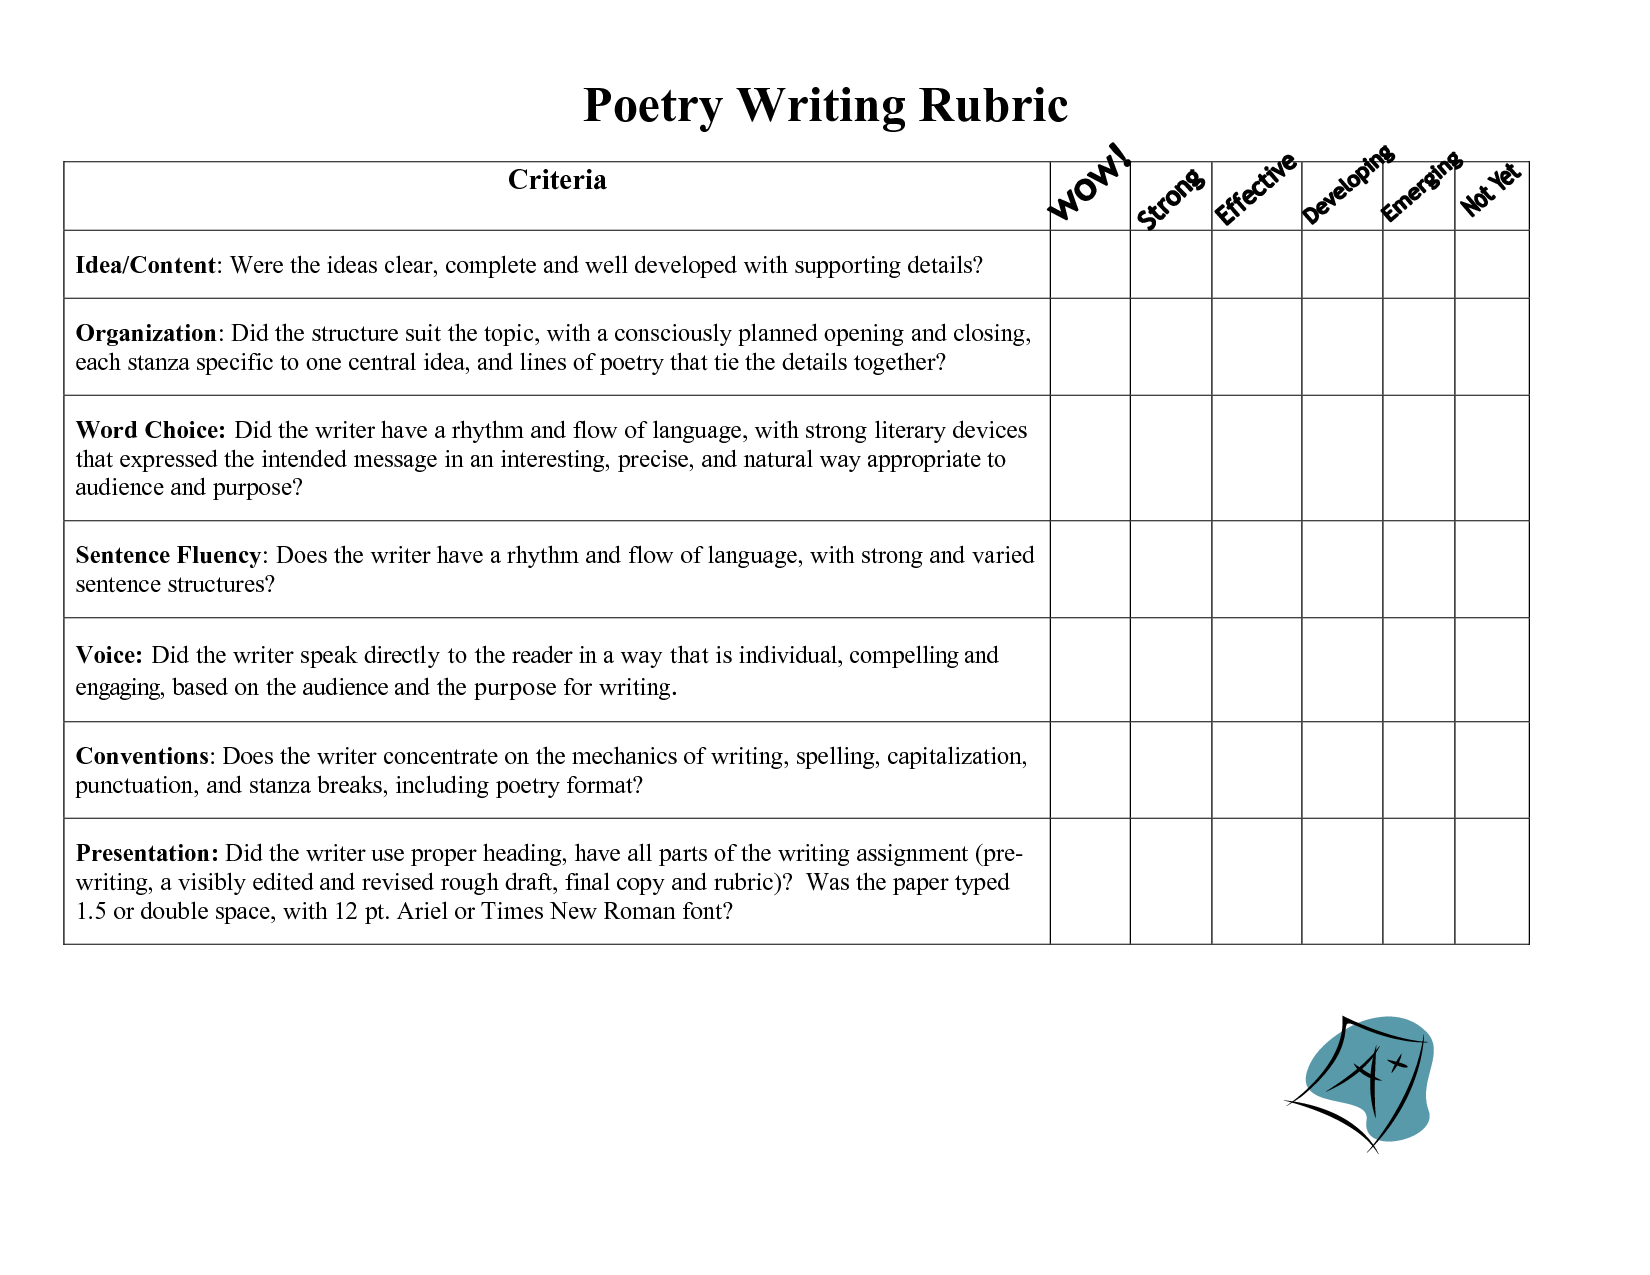 Poem clipart composition writing Poetry important covers given Rubric: